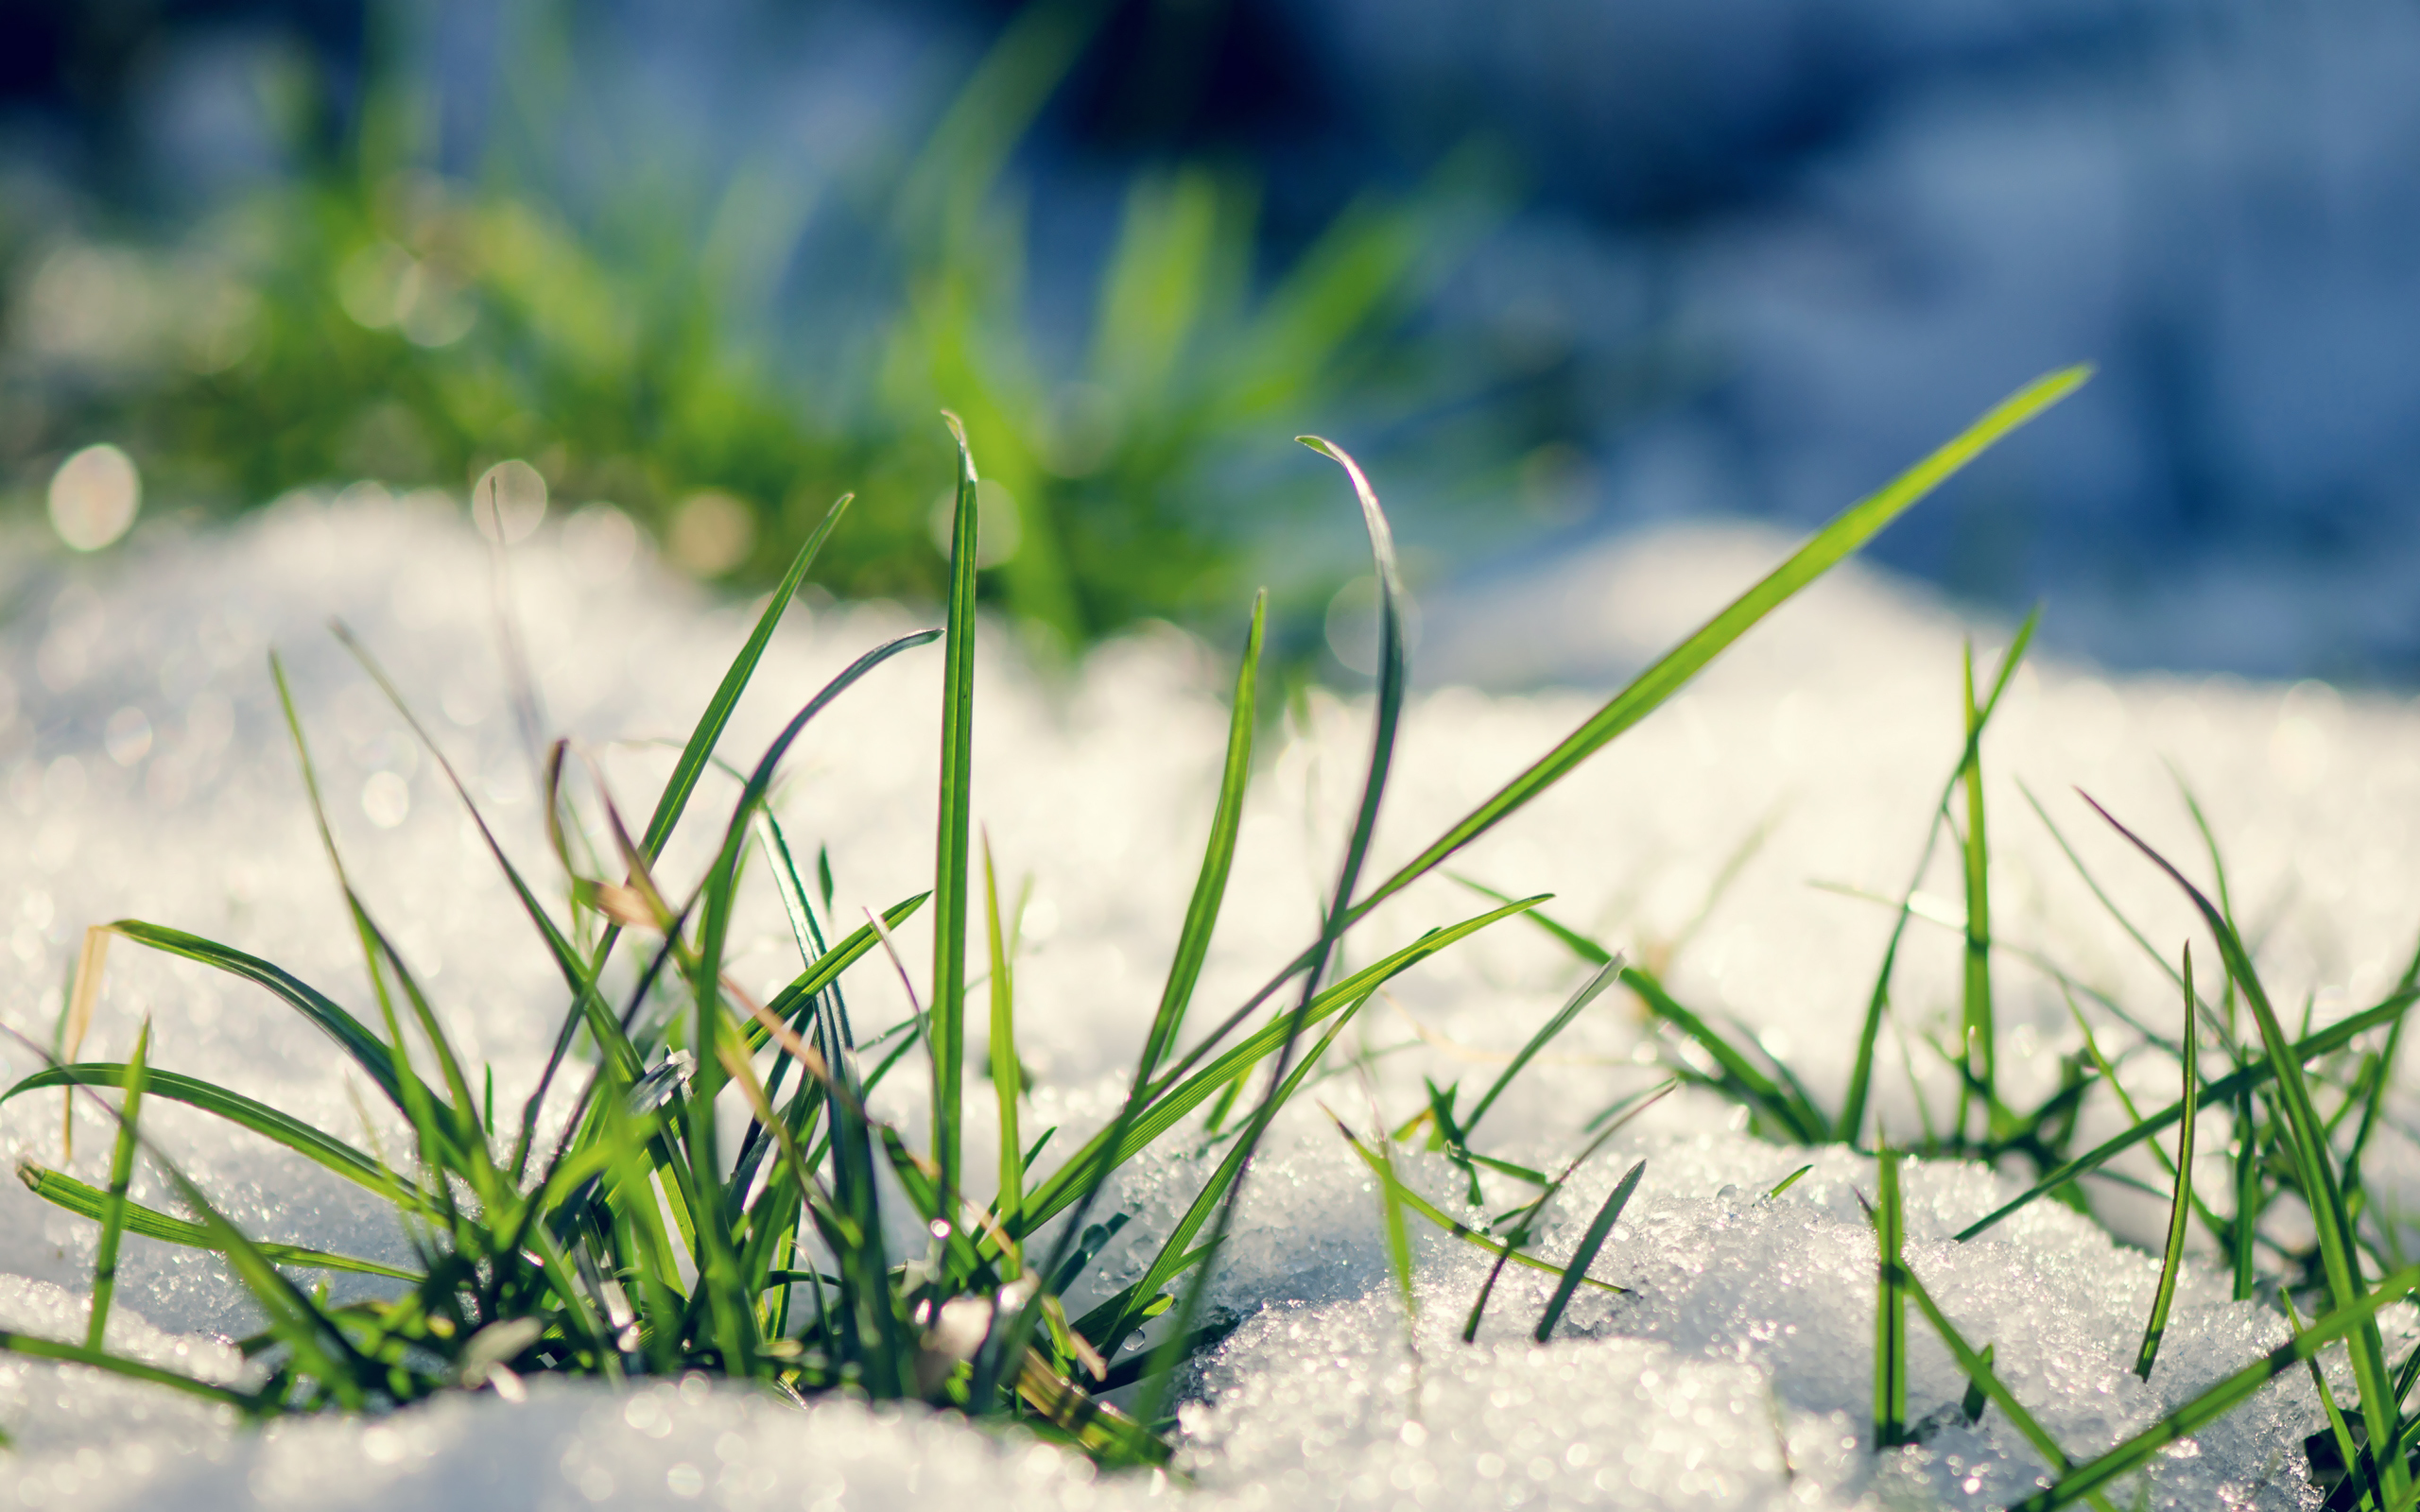 Early grass from under the snow in spring wallpapers and images 2560x1600